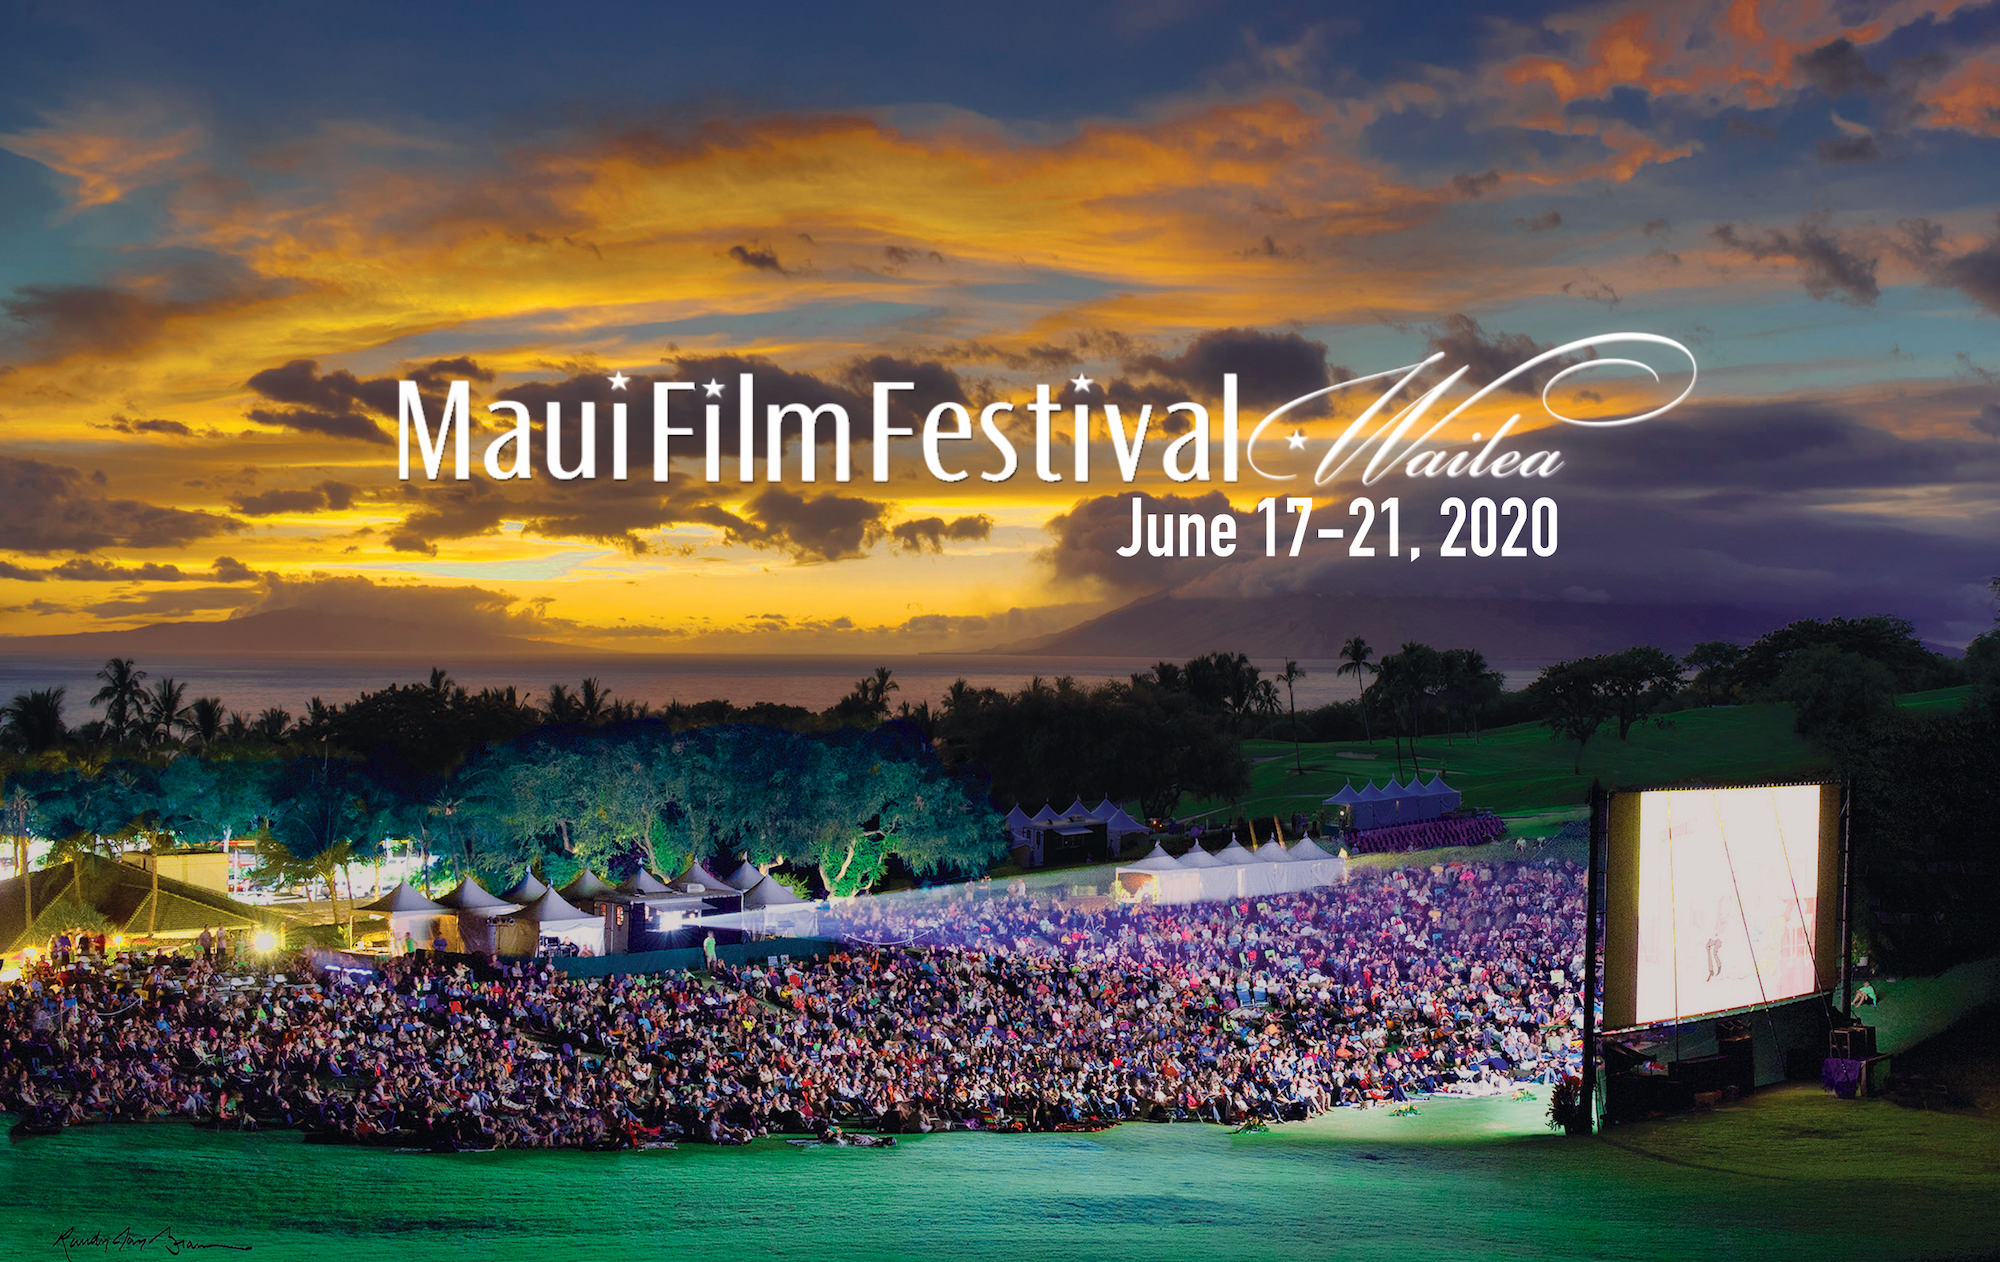 photo of Maui Film Festival by Randy Jay Braun